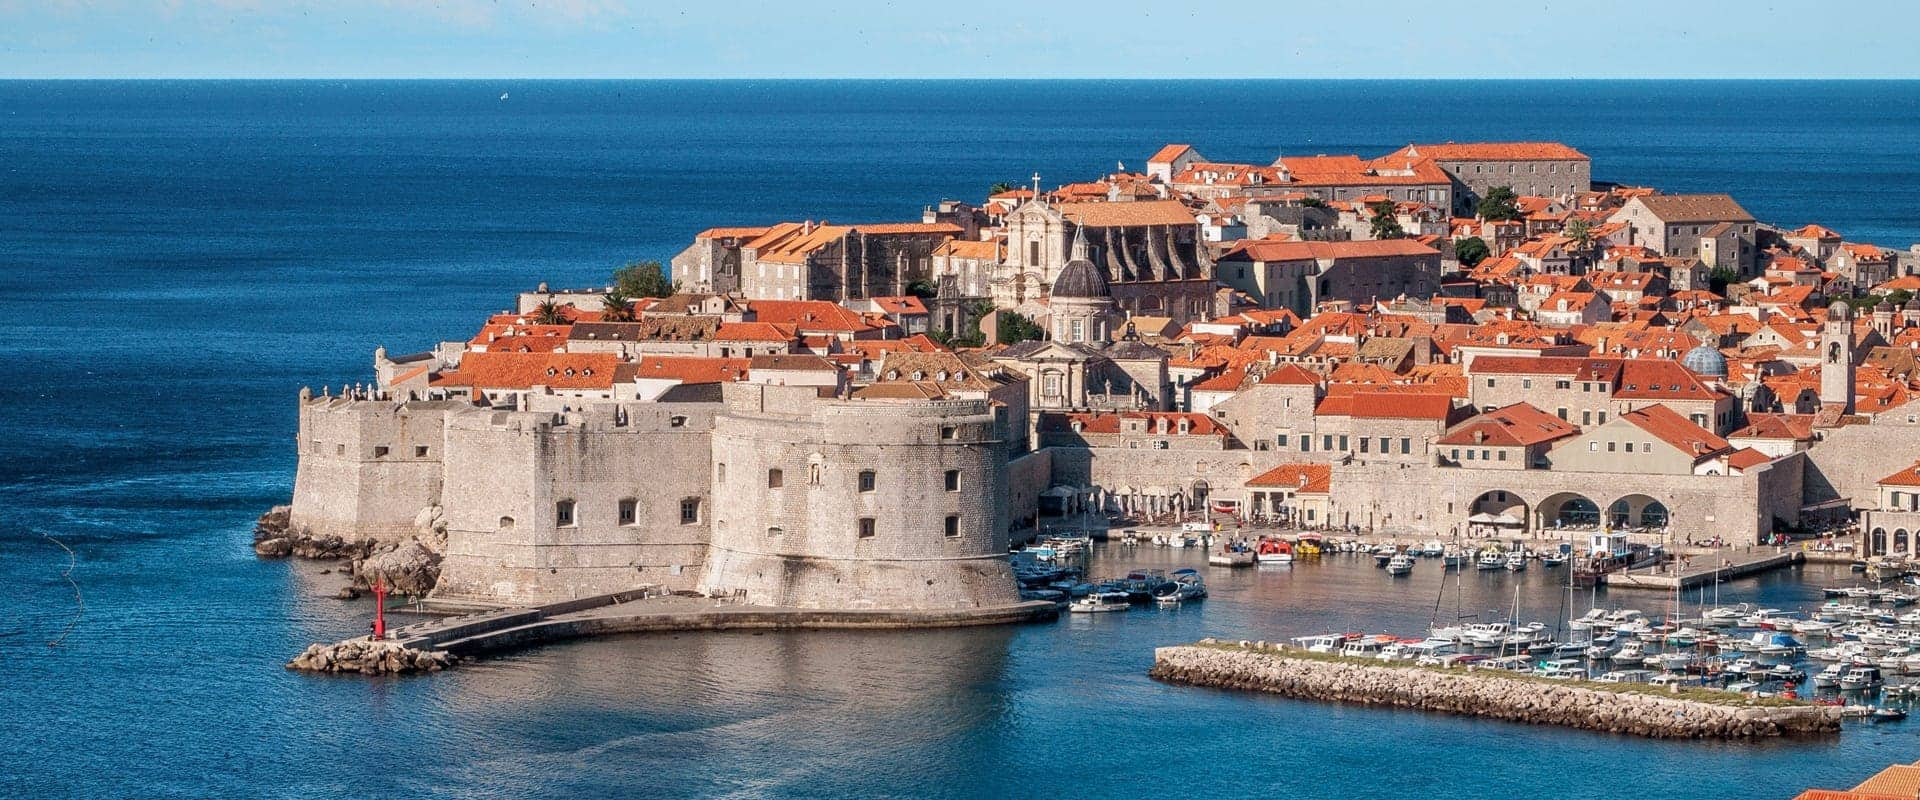 Dubrovnik Adventure Cruises